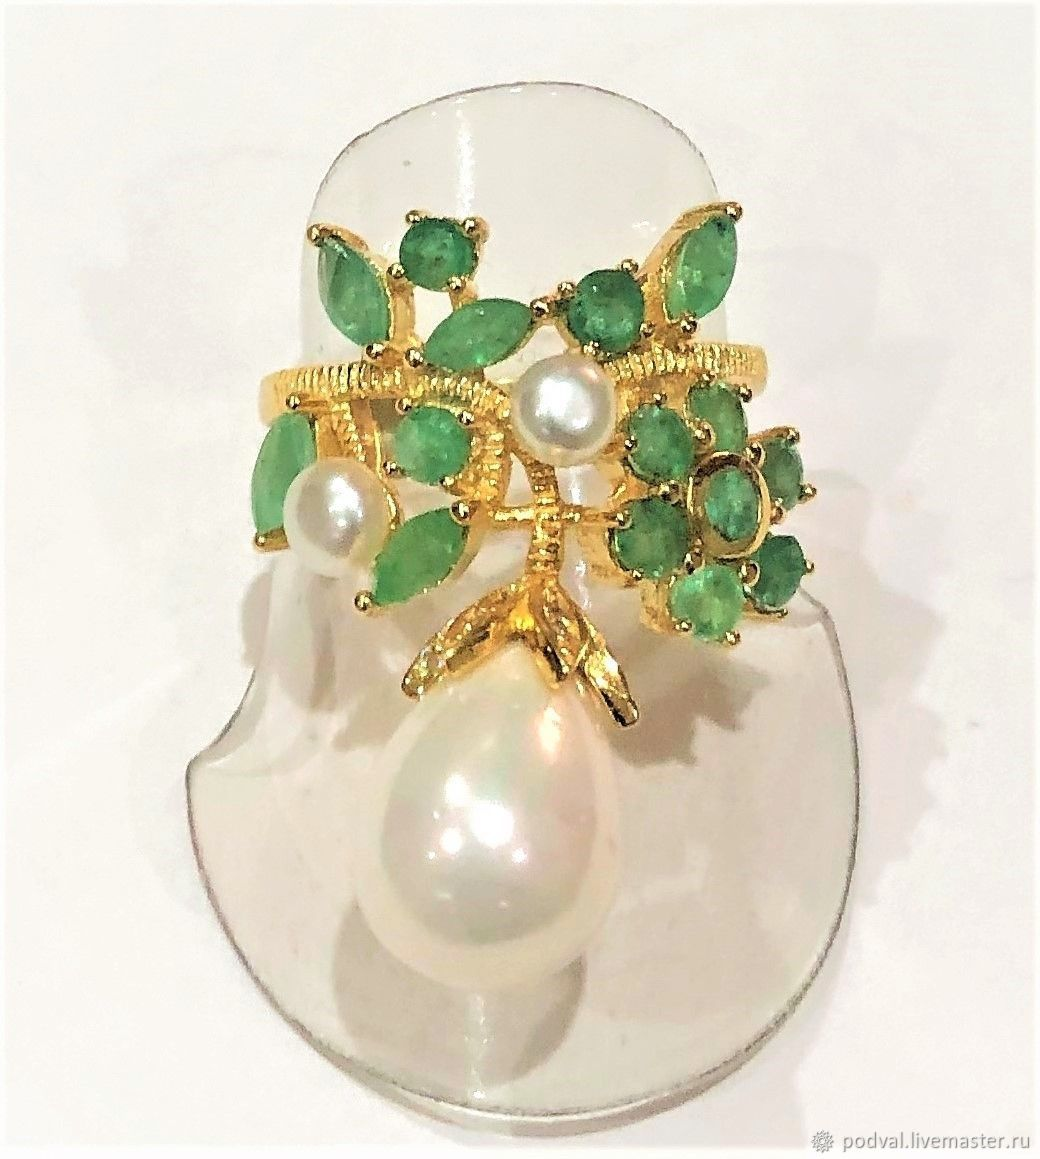 Silver ring with emeralds and pearls ' Sea luxury', Rings, Korolev,  Фото №1